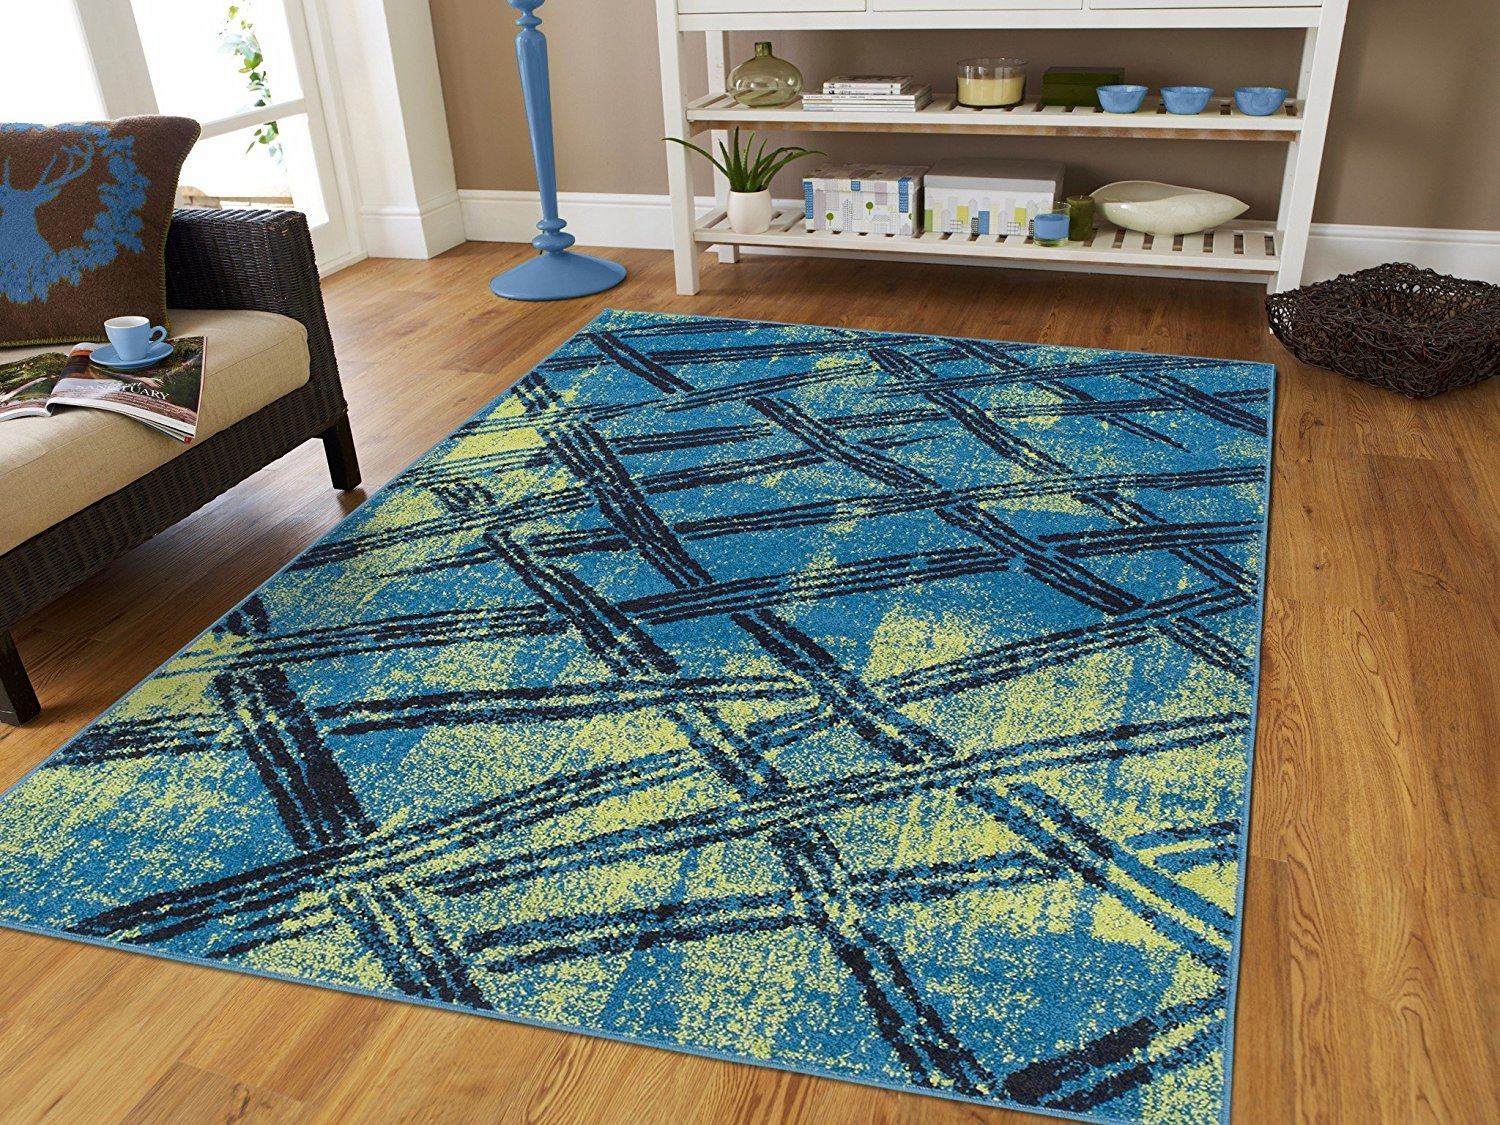 Area Rugs on Clearance Small Rugs for under $20 2x3 Green Blue Door